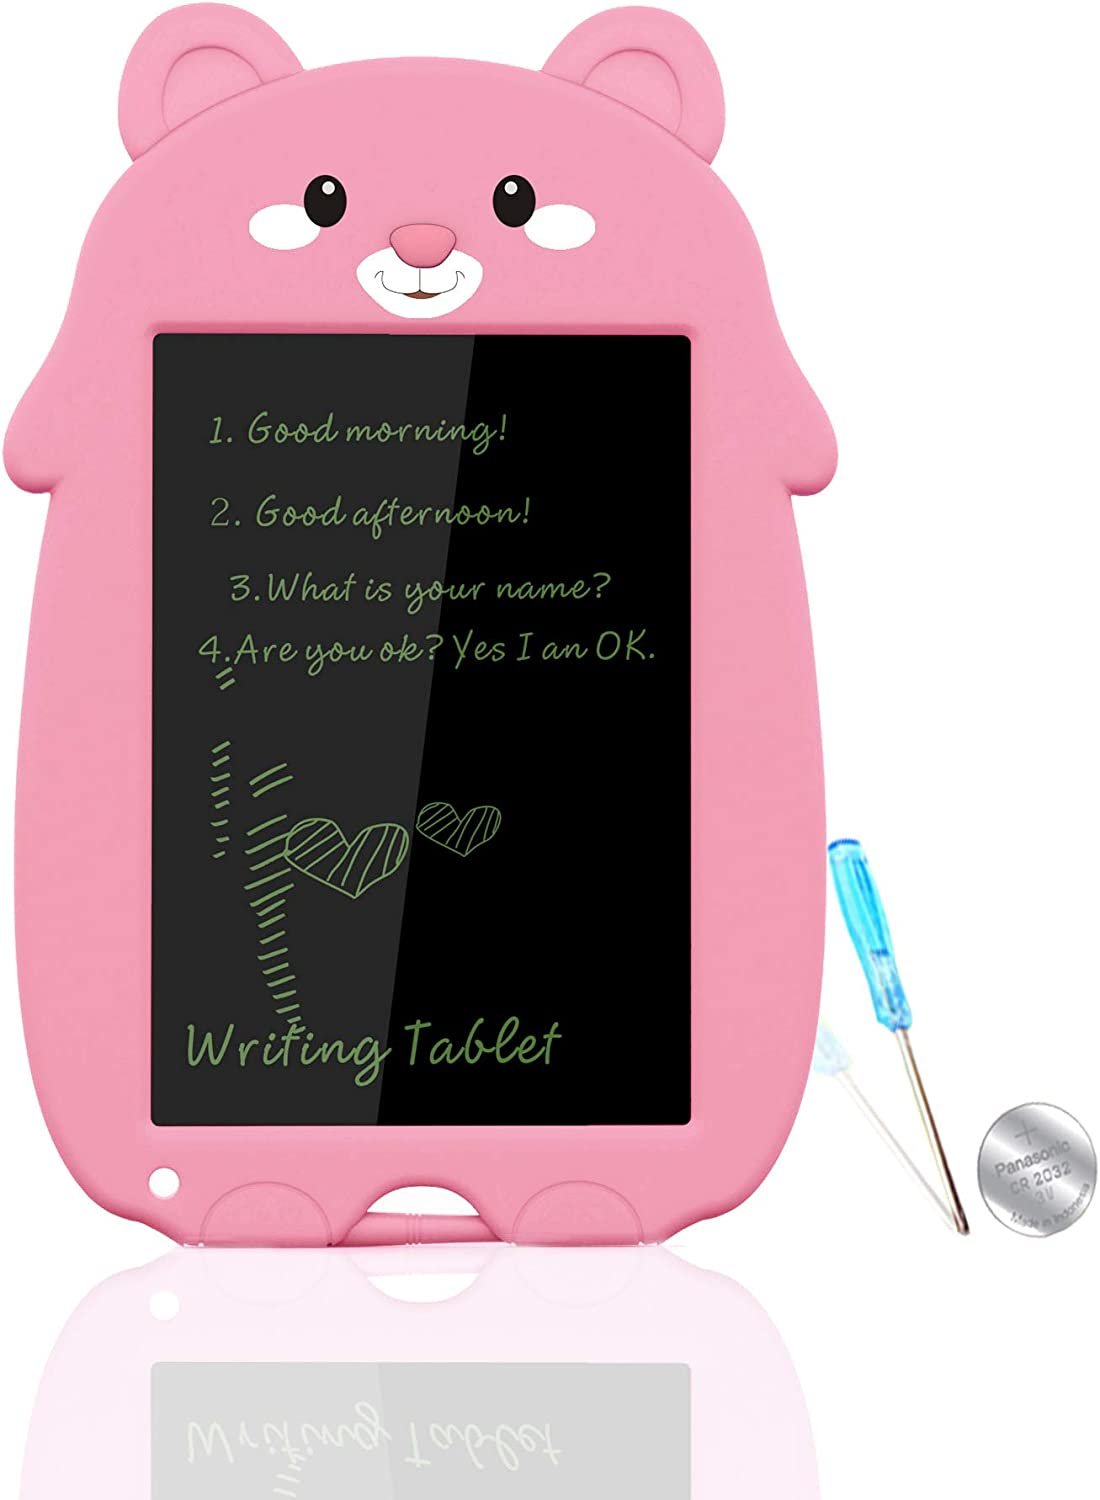 Black2 9 inch Writing /&Drawing Pad Doodle Board Toys for Kids VNVDFLM Birthday Gift for 4-5 Years Old Kids LCD Writing Tablet with Stylus Smart Paper for Drawing Writer